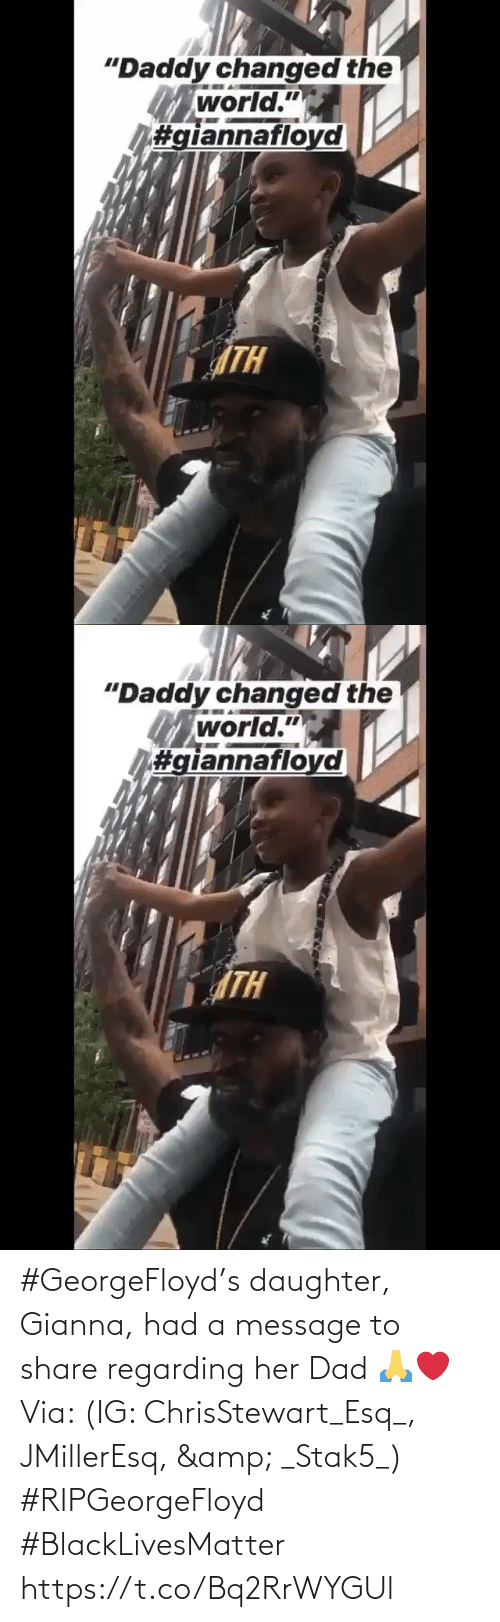 Dad: #GeorgeFloyd's daughter, Gianna, had a message to share regarding her Dad 🙏❤️ Via: (IG: ChrisStewart_Esq_, JMillerEsq, & _Stak5_) #RIPGeorgeFloyd #BlackLivesMatter https://t.co/Bq2RrWYGUl